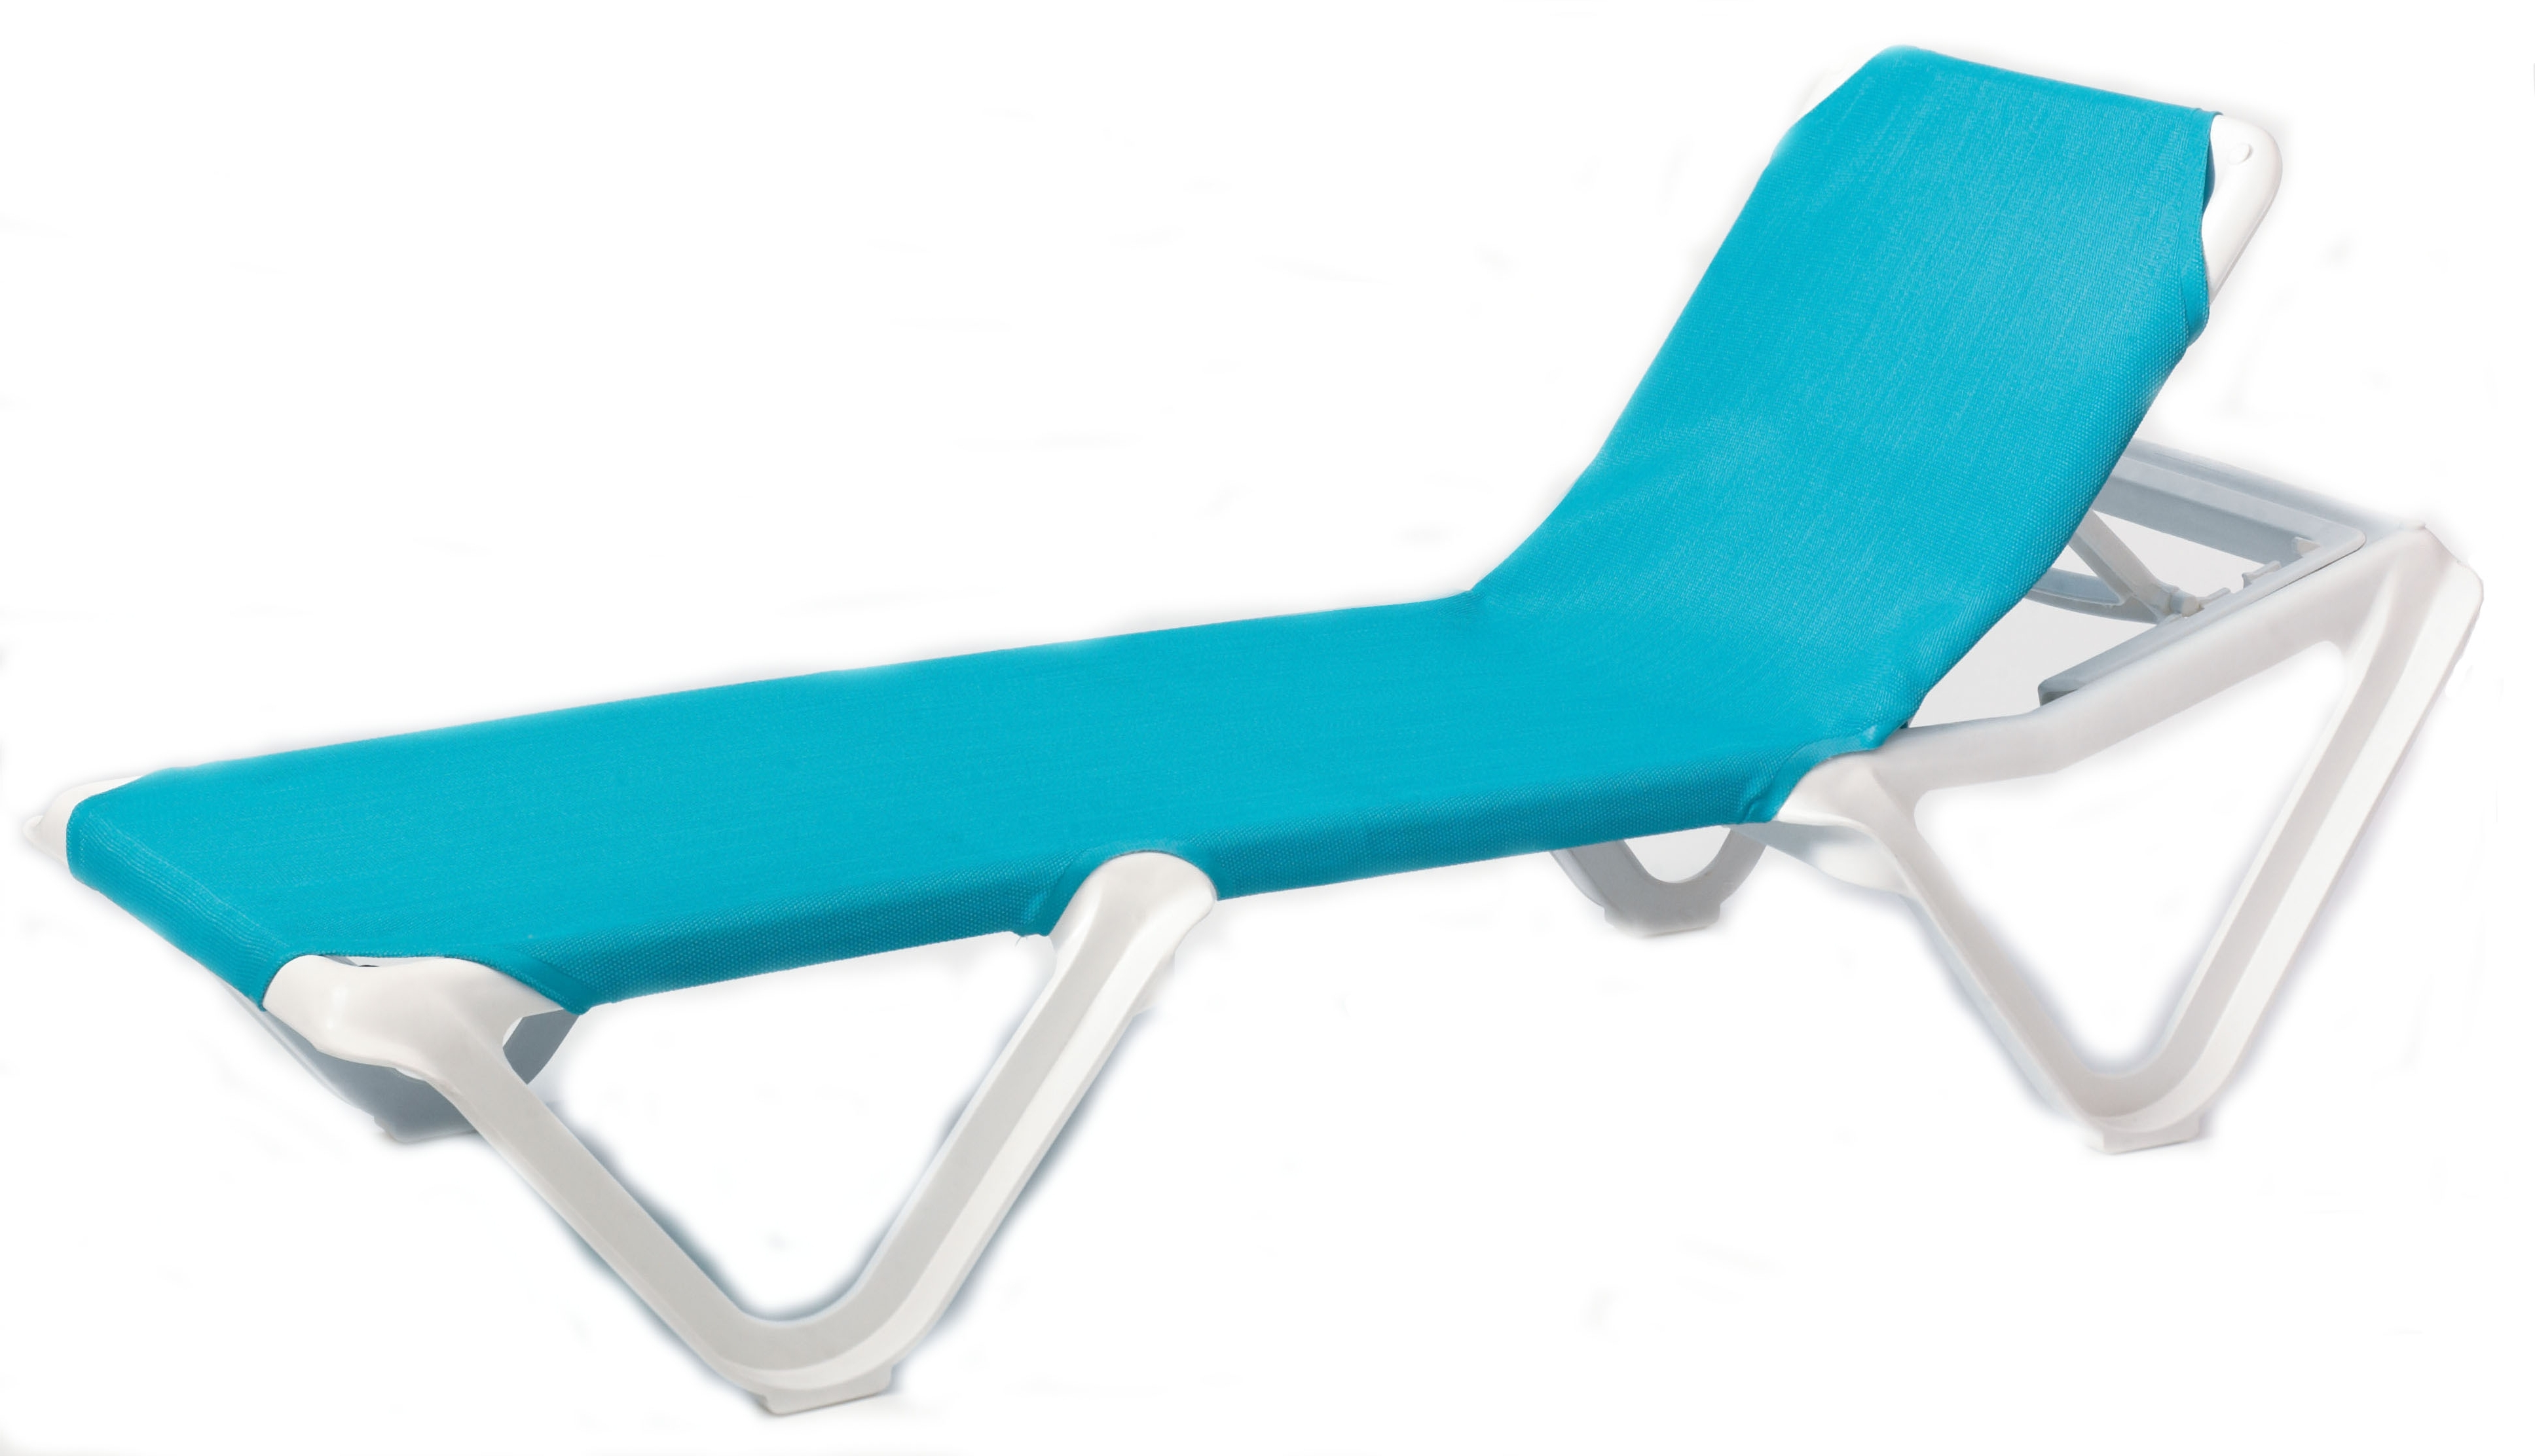 Enjoy The Sunshine Well Through Pool Chaise Lounge Chairs Regarding Fashionable Outdoor Chaise Lounge Chairs Under $200 (Gallery 8 of 15)